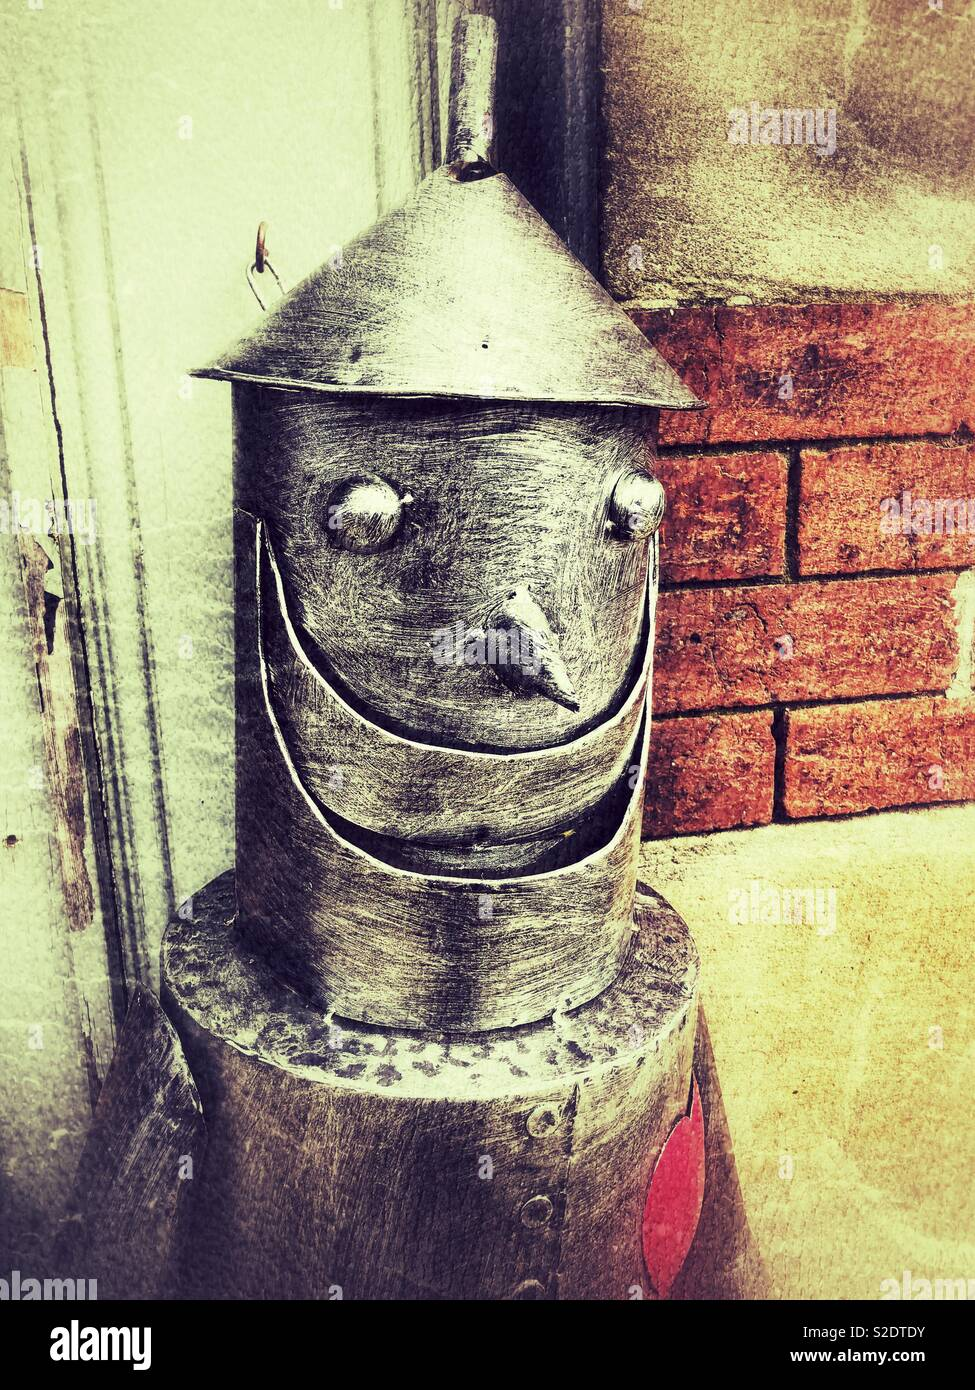 Head of The Tin Man from the Wizard of Oz advertising sculpture - Stock Image